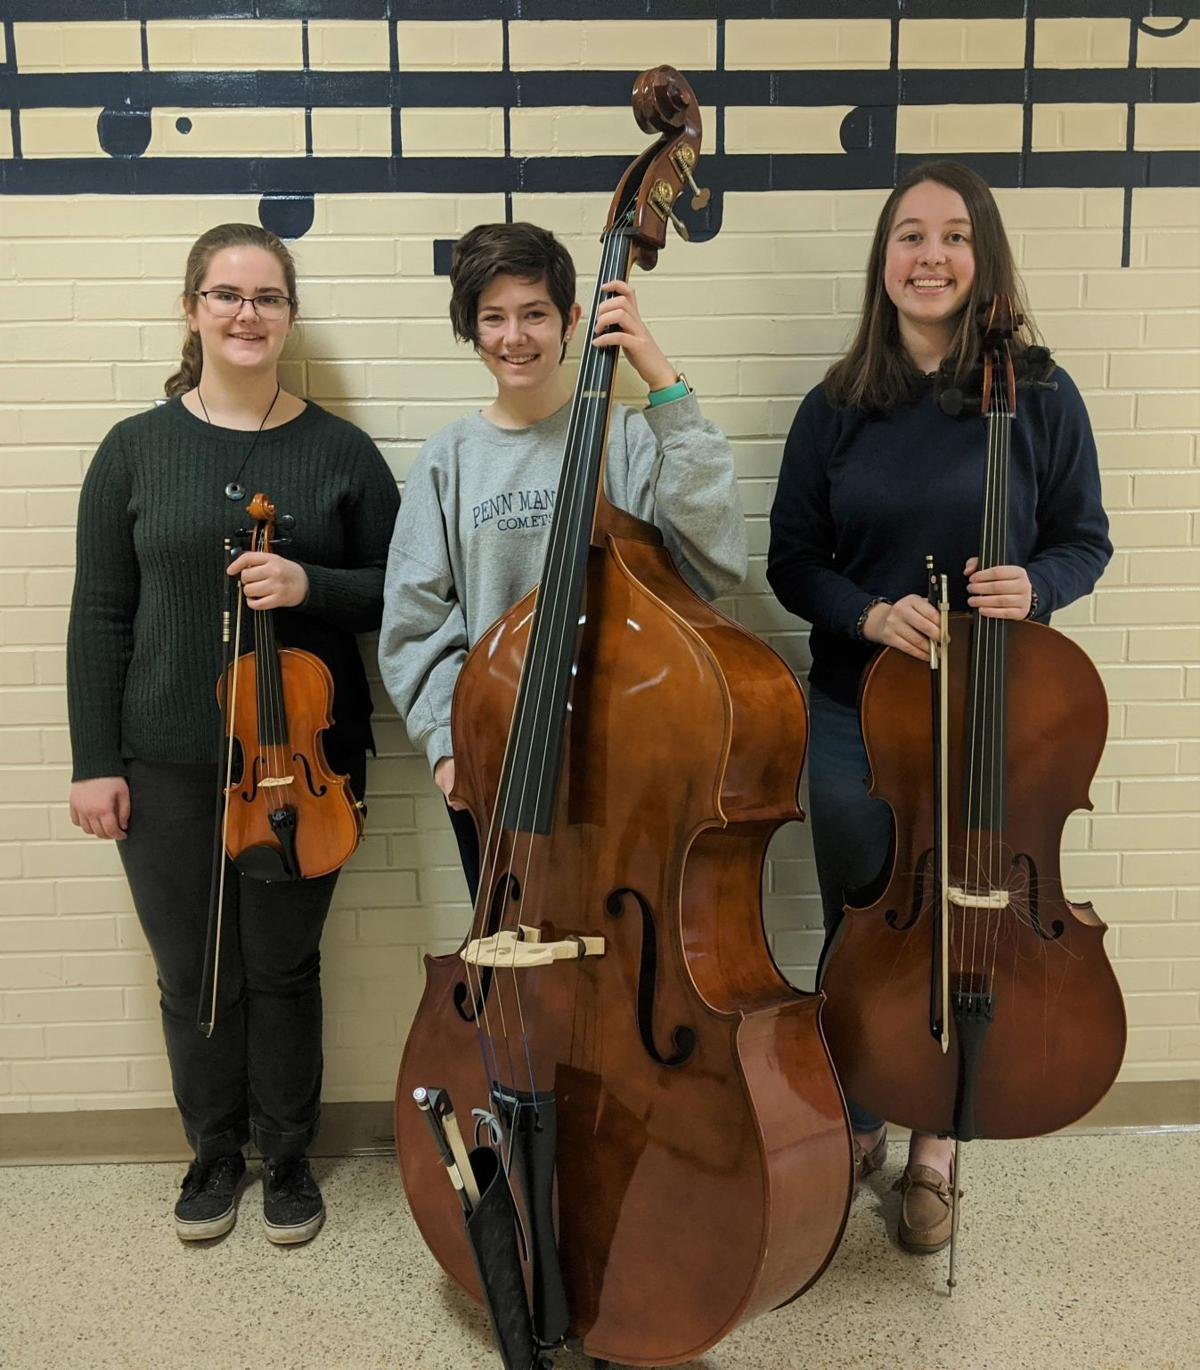 Penn Manor orchestra